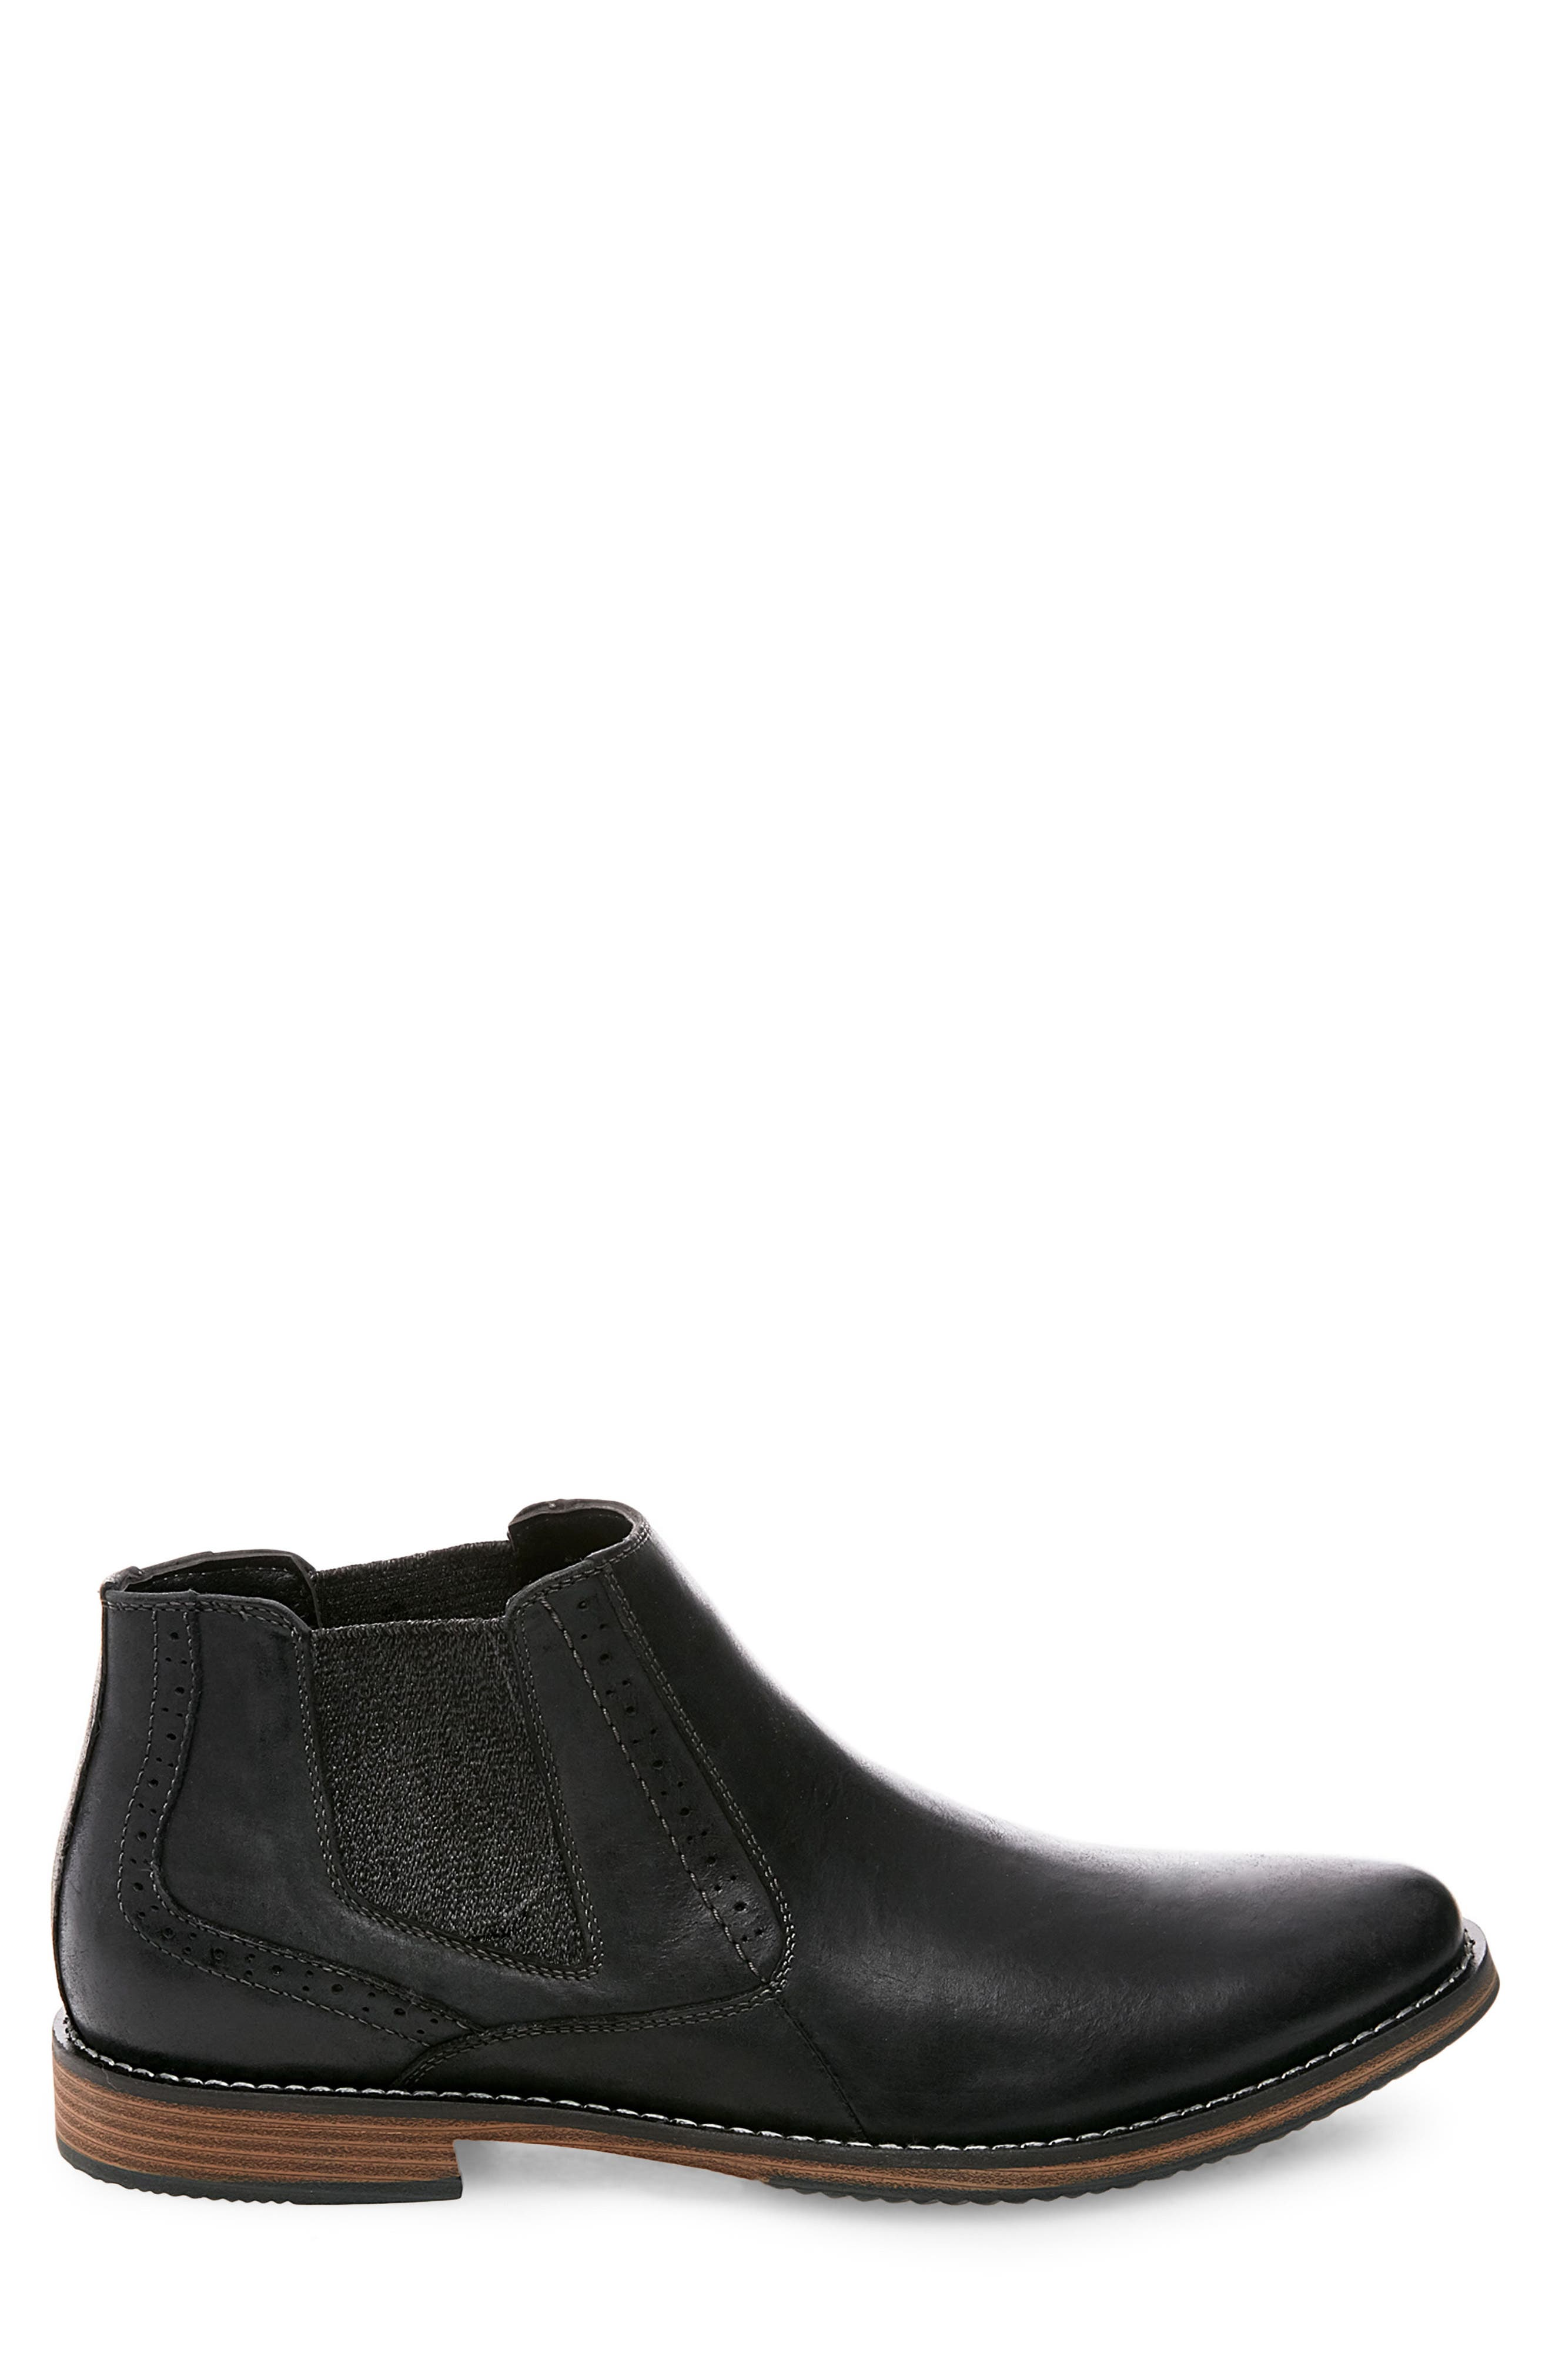 Paxton Chelsea Boot,                             Alternate thumbnail 3, color,                             001